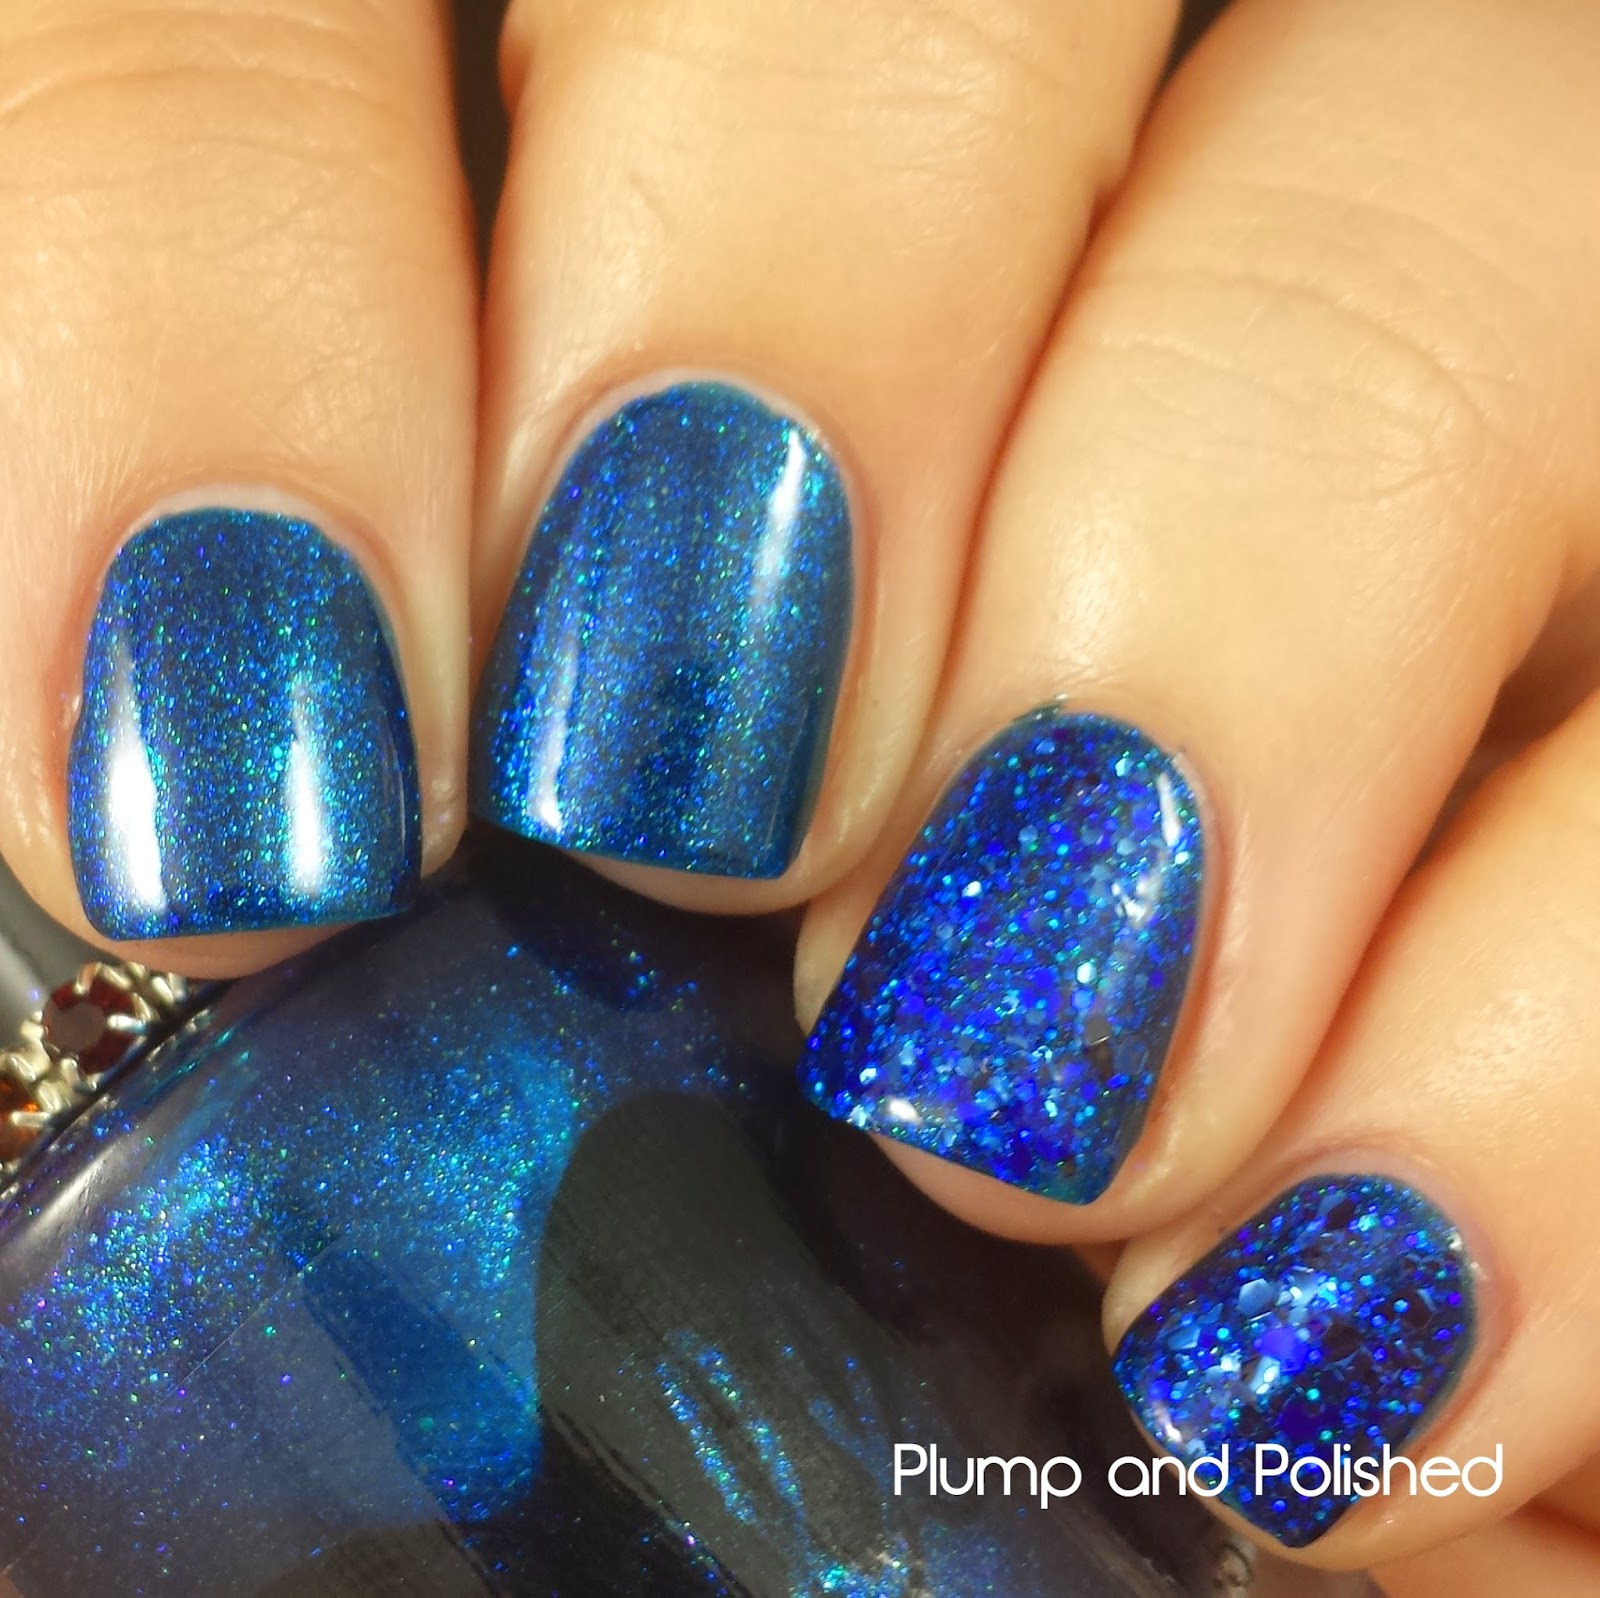 ellagee - Sparkling Gemstones: Glimmering Sapphire and Crushed Sapphire